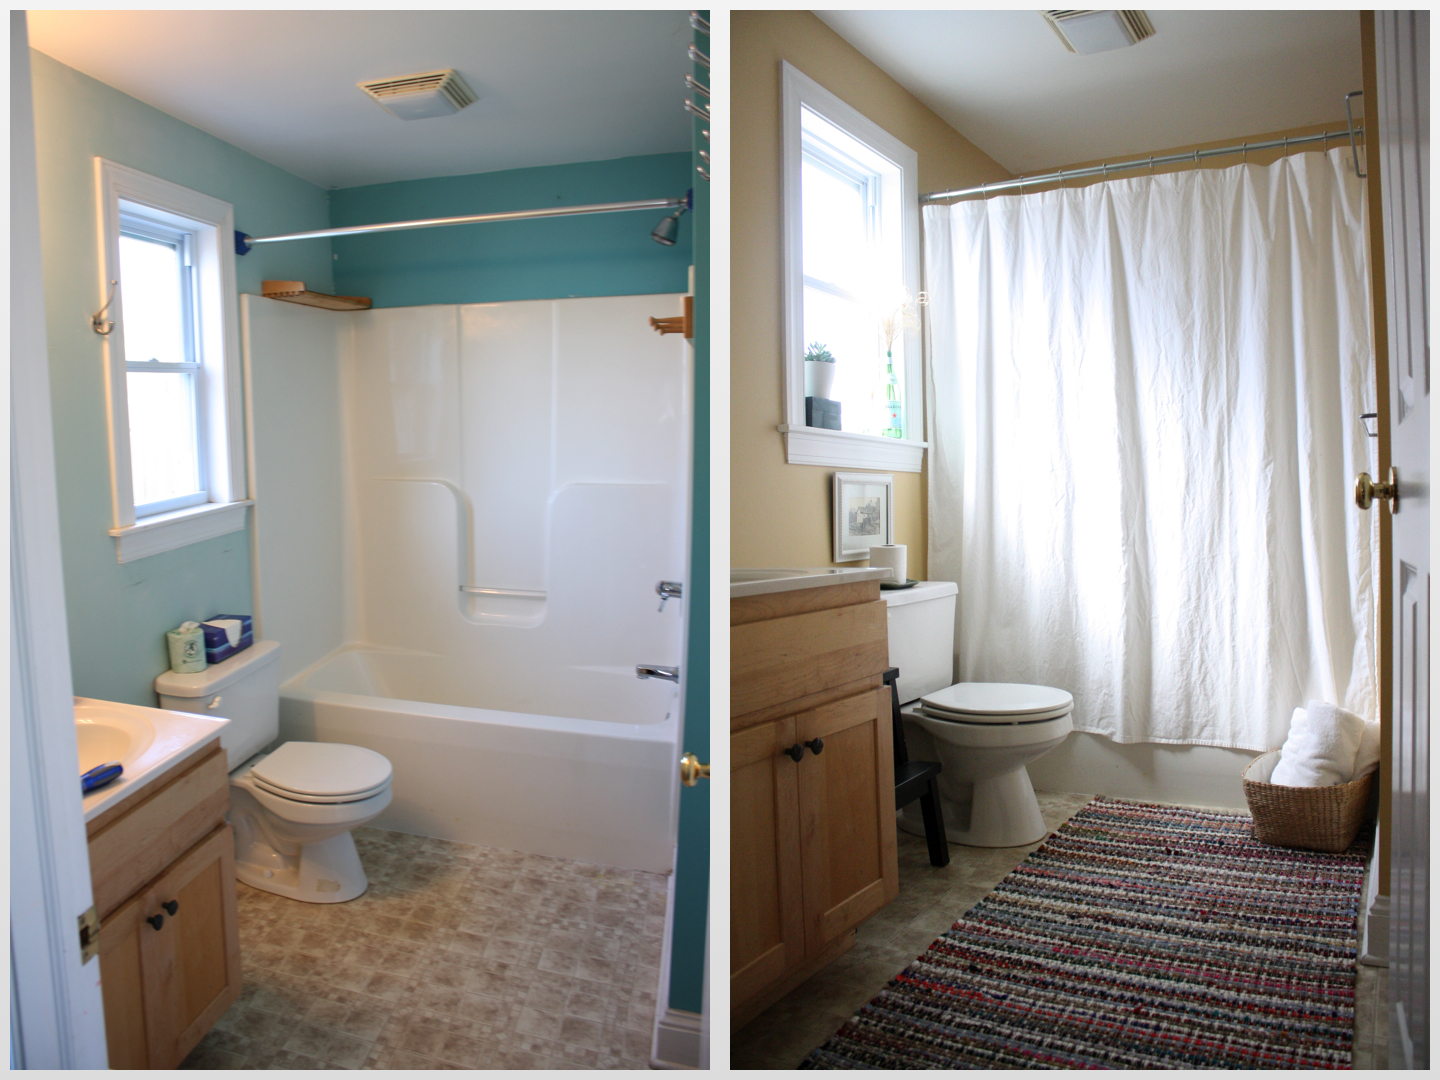 Bathroom Makeovers On The Cheap cheap bathroom makeover photo - 11 | design your home